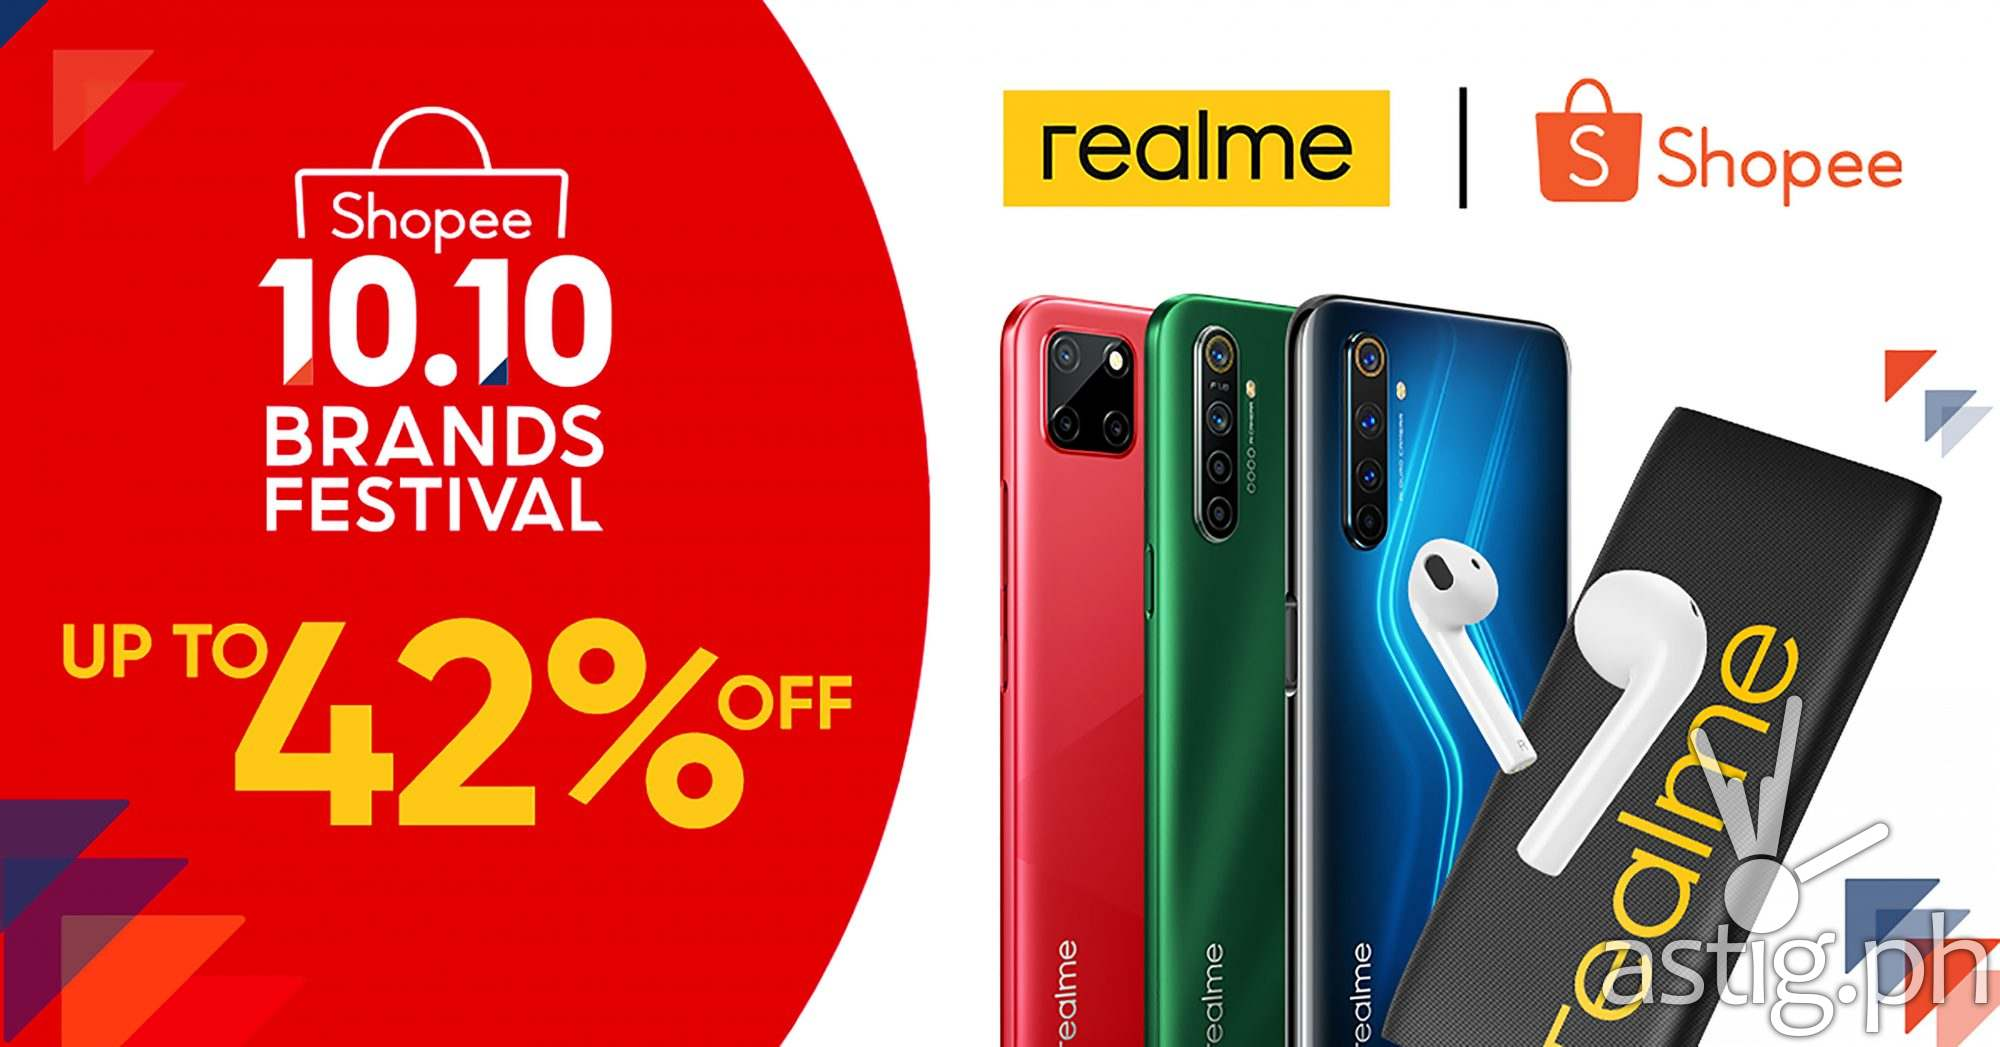 realme 10.10 2020 sale Shopee